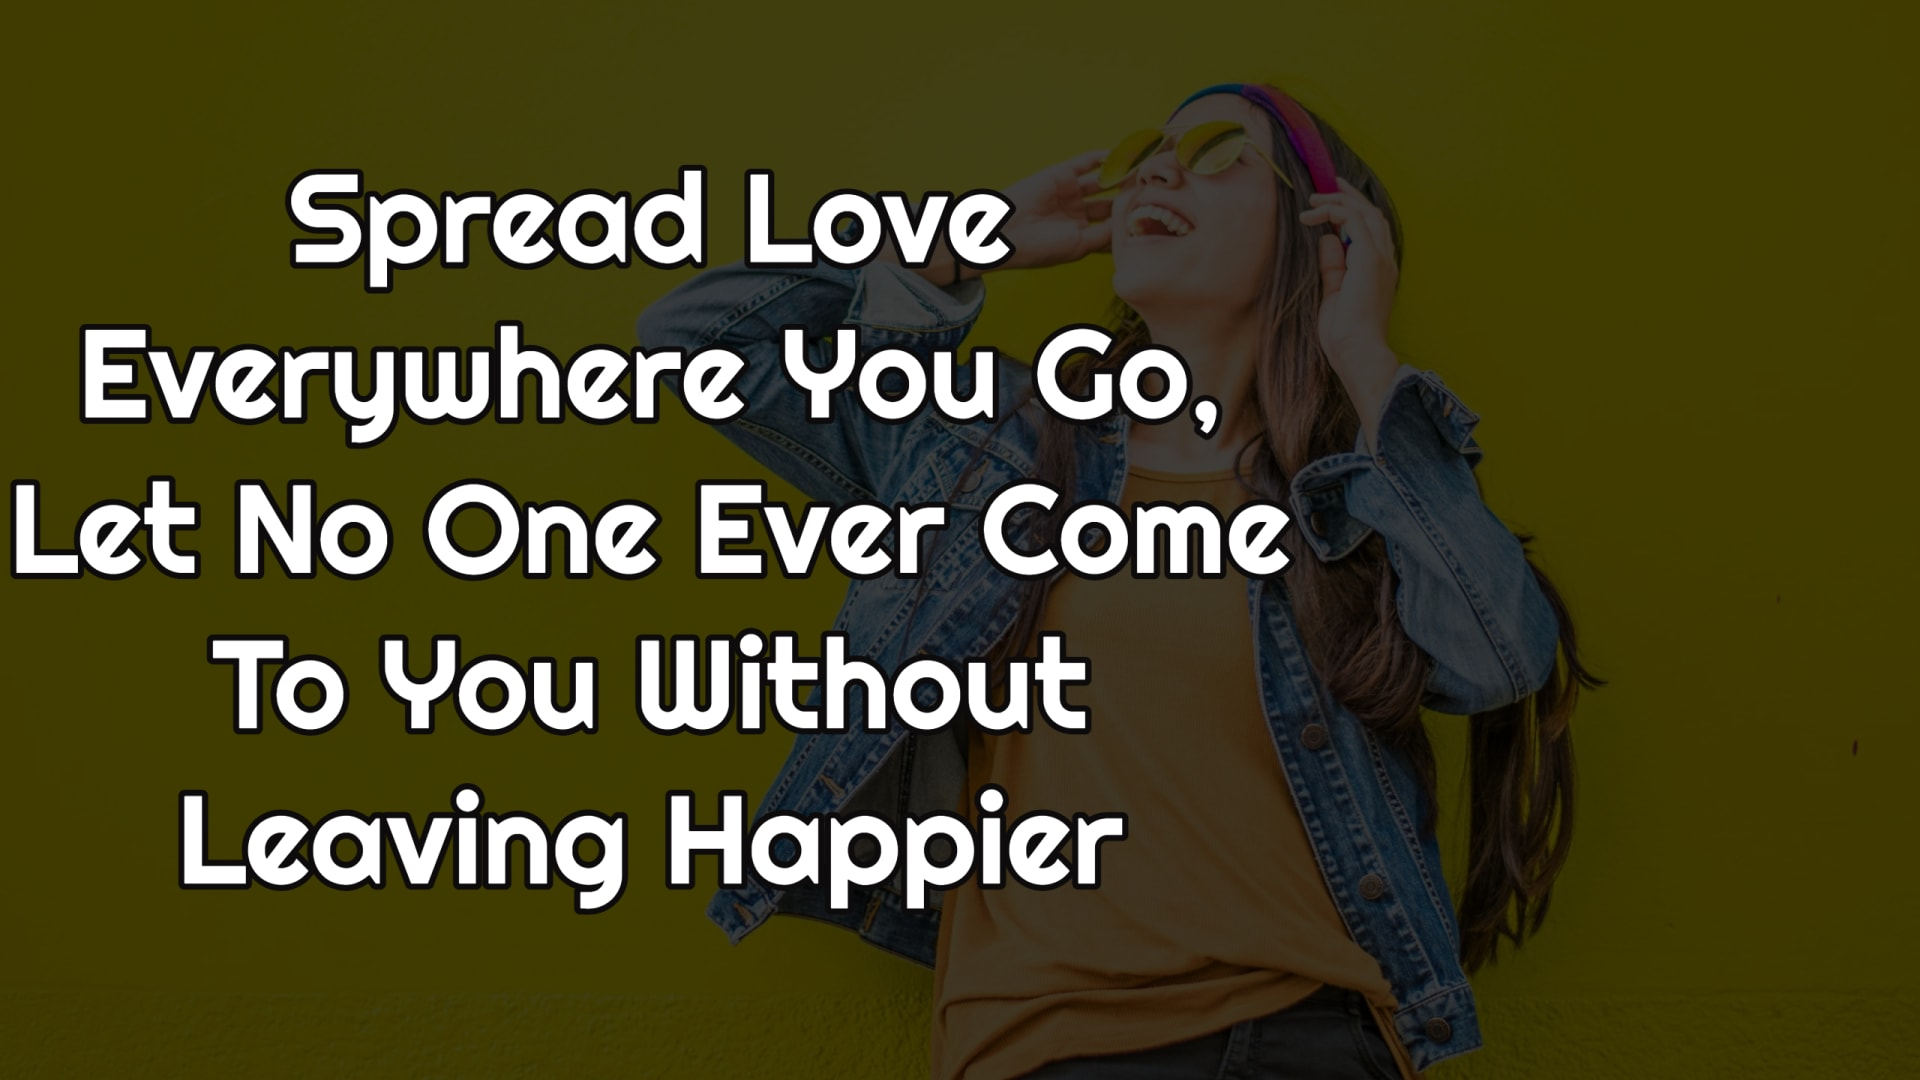 Spread Love Everywhere You Go, Let No One Ever Come To You Without Leaving Happier